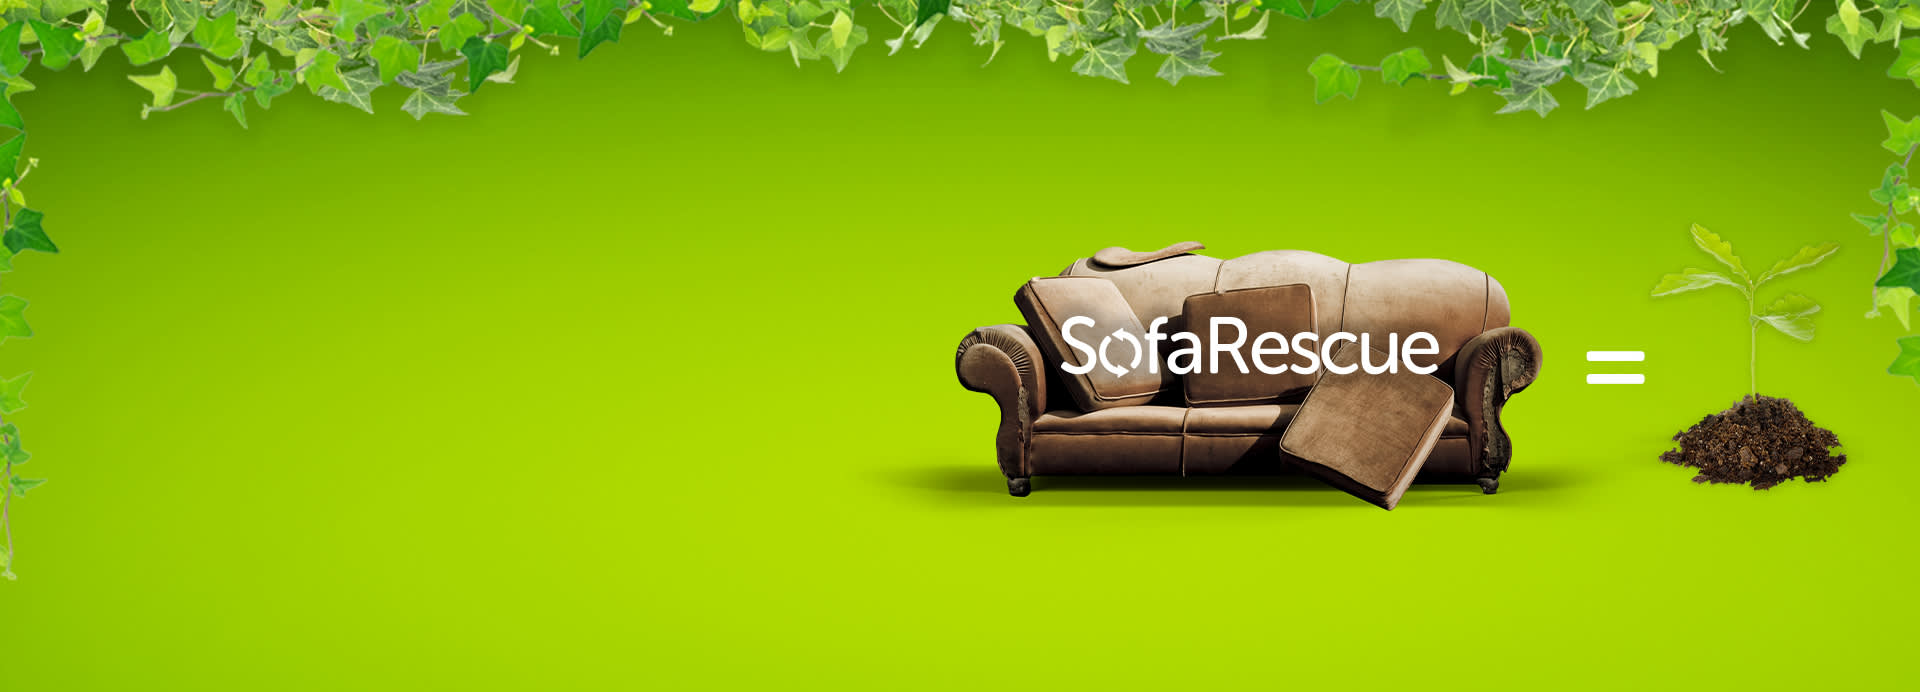 Sofa Rescue and Plan Tree Offer